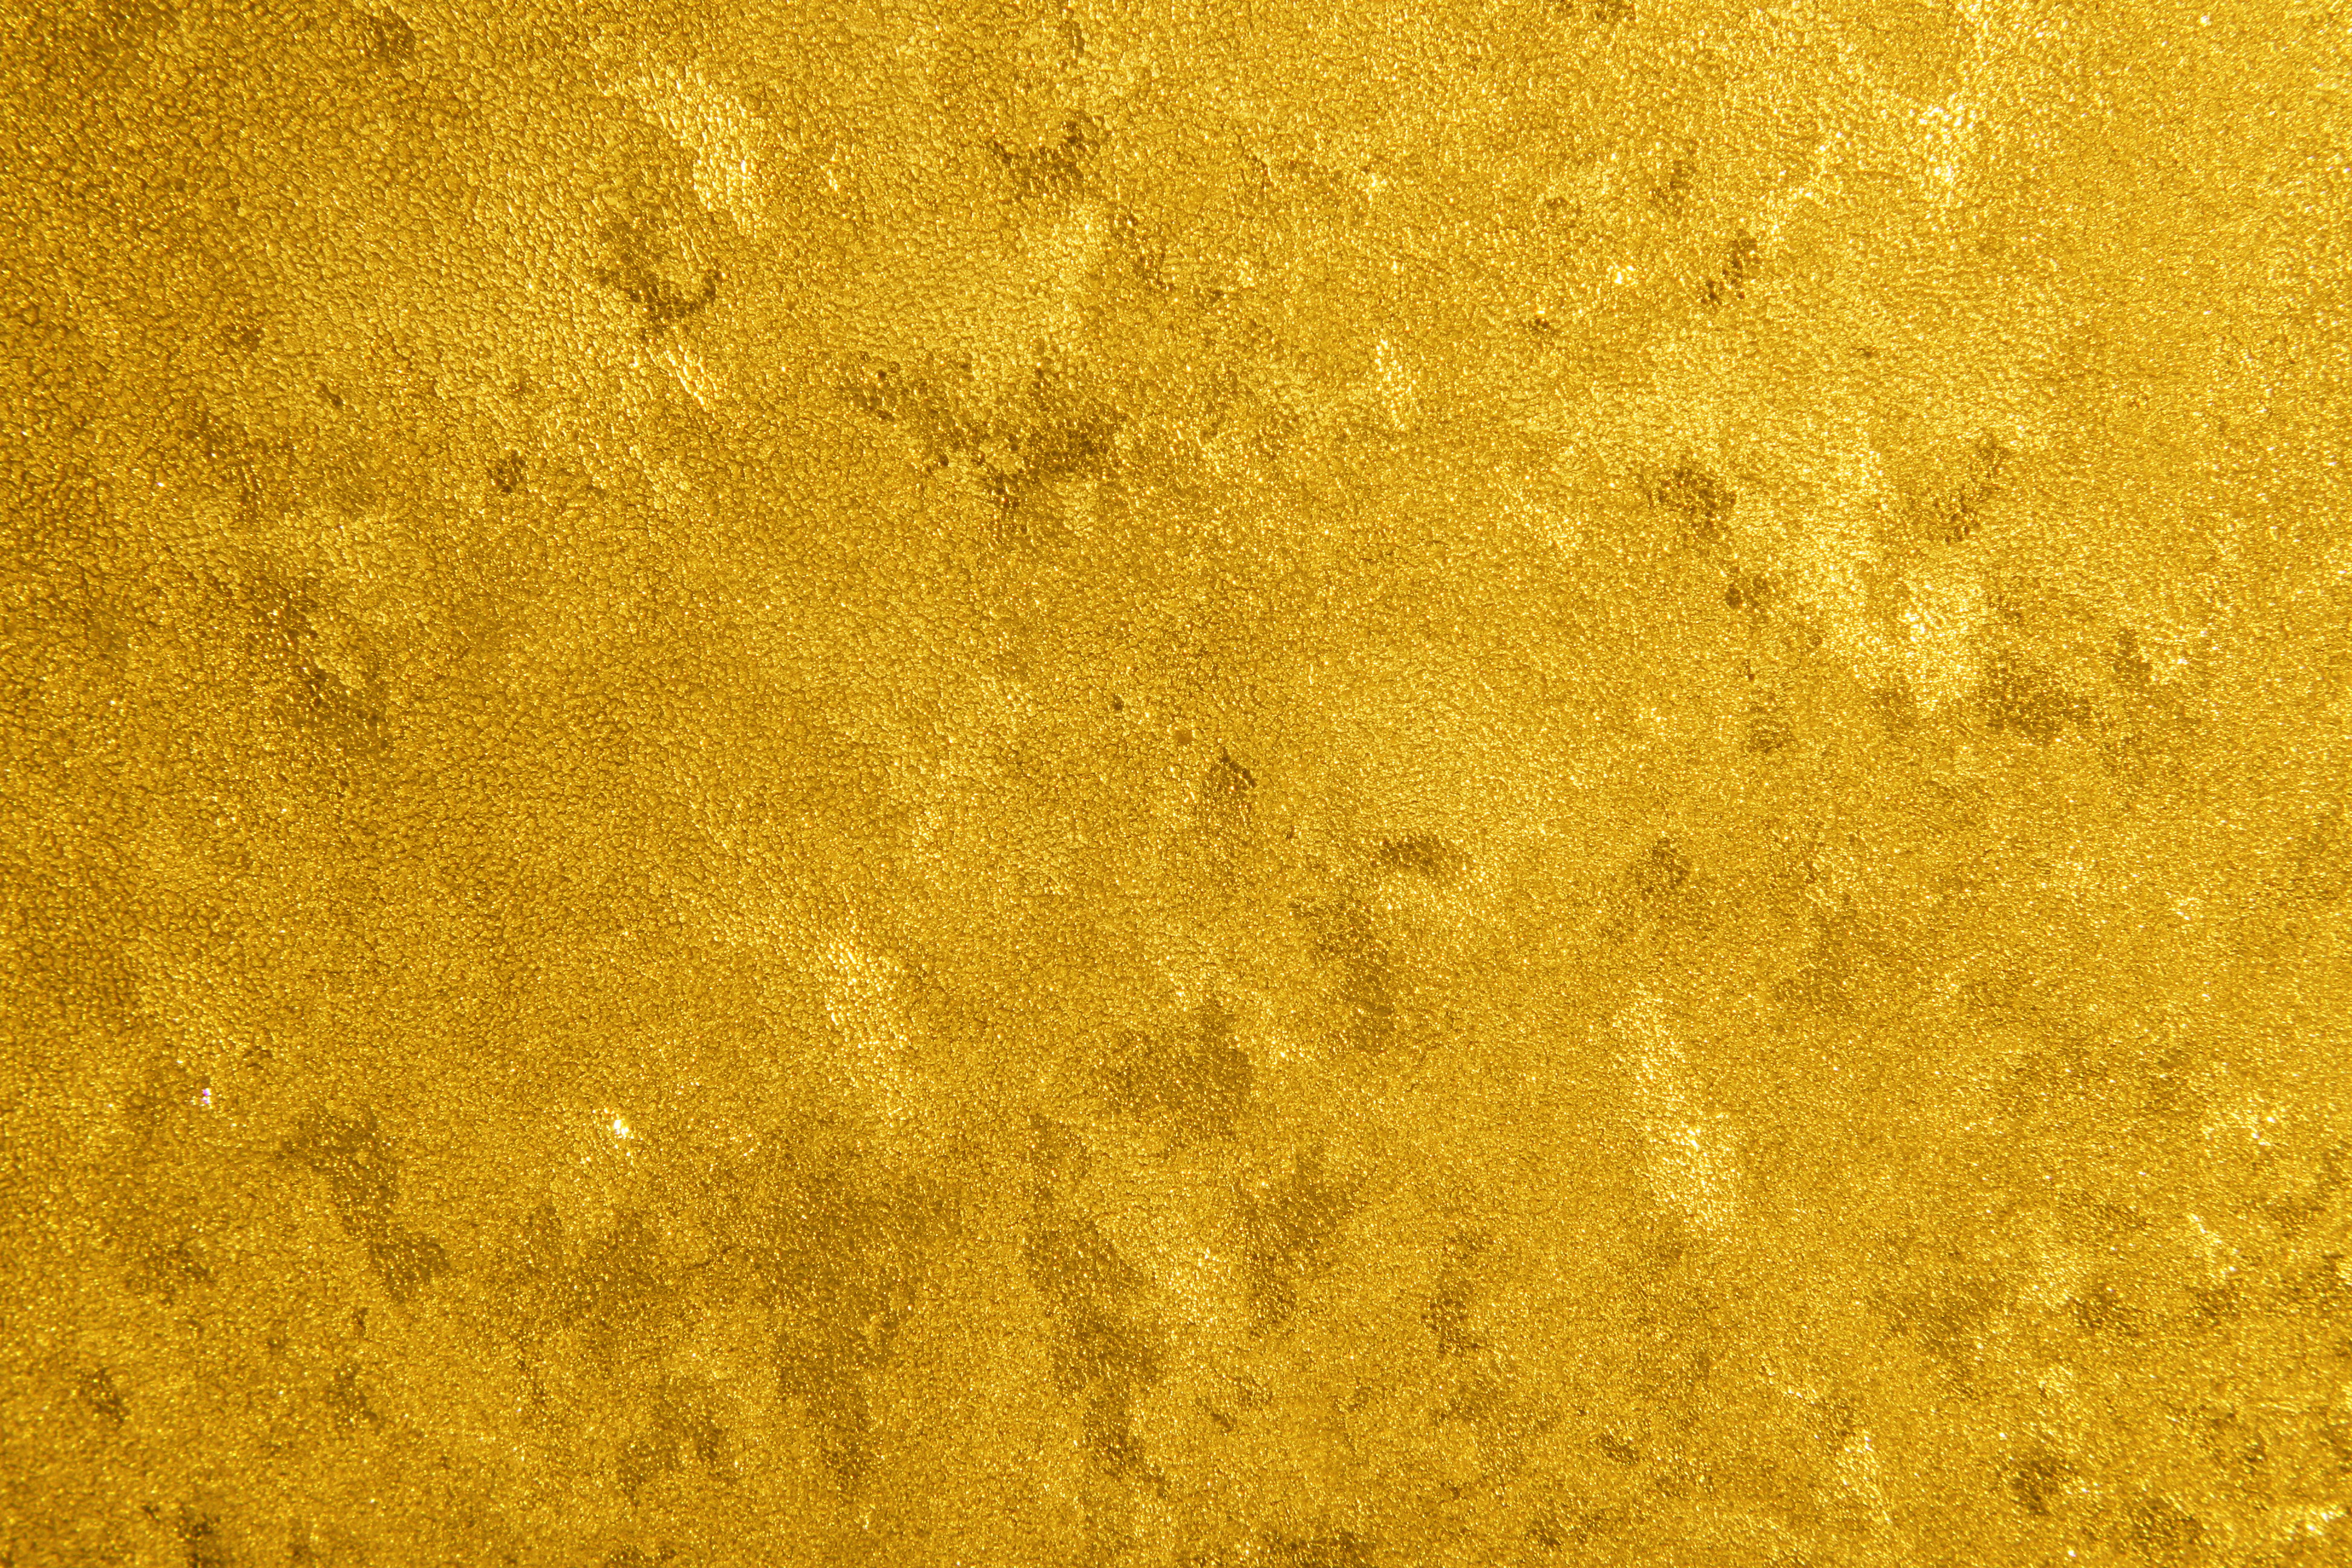 Gilding Glass With Gold